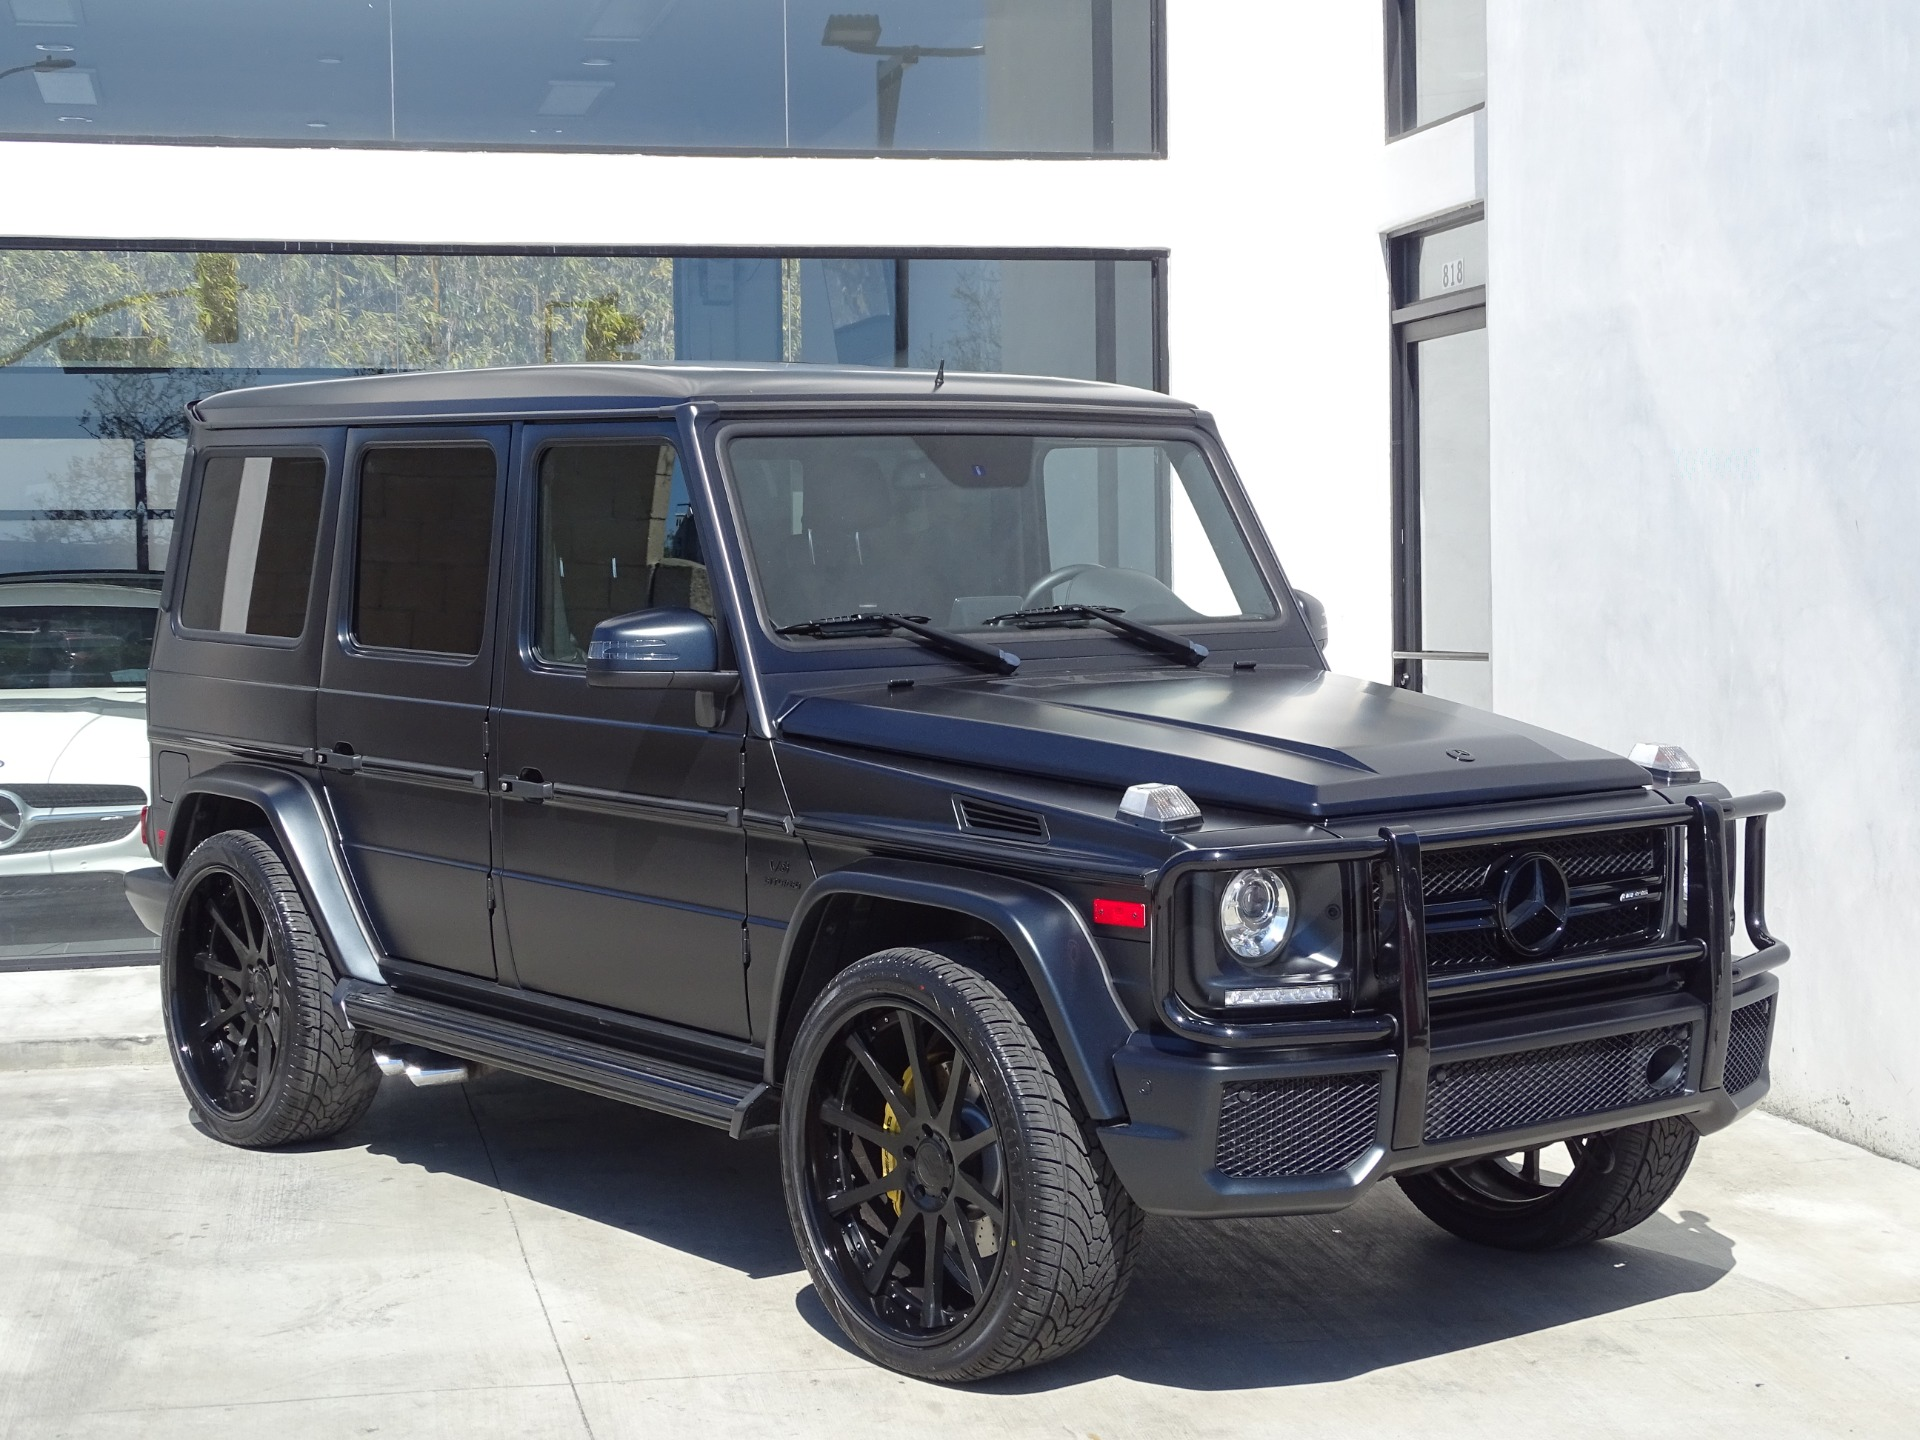 Mercedes Dealership Near Me >> 2016 Mercedes-Benz G-Class AMG G63 Stock # 6470 for sale ...